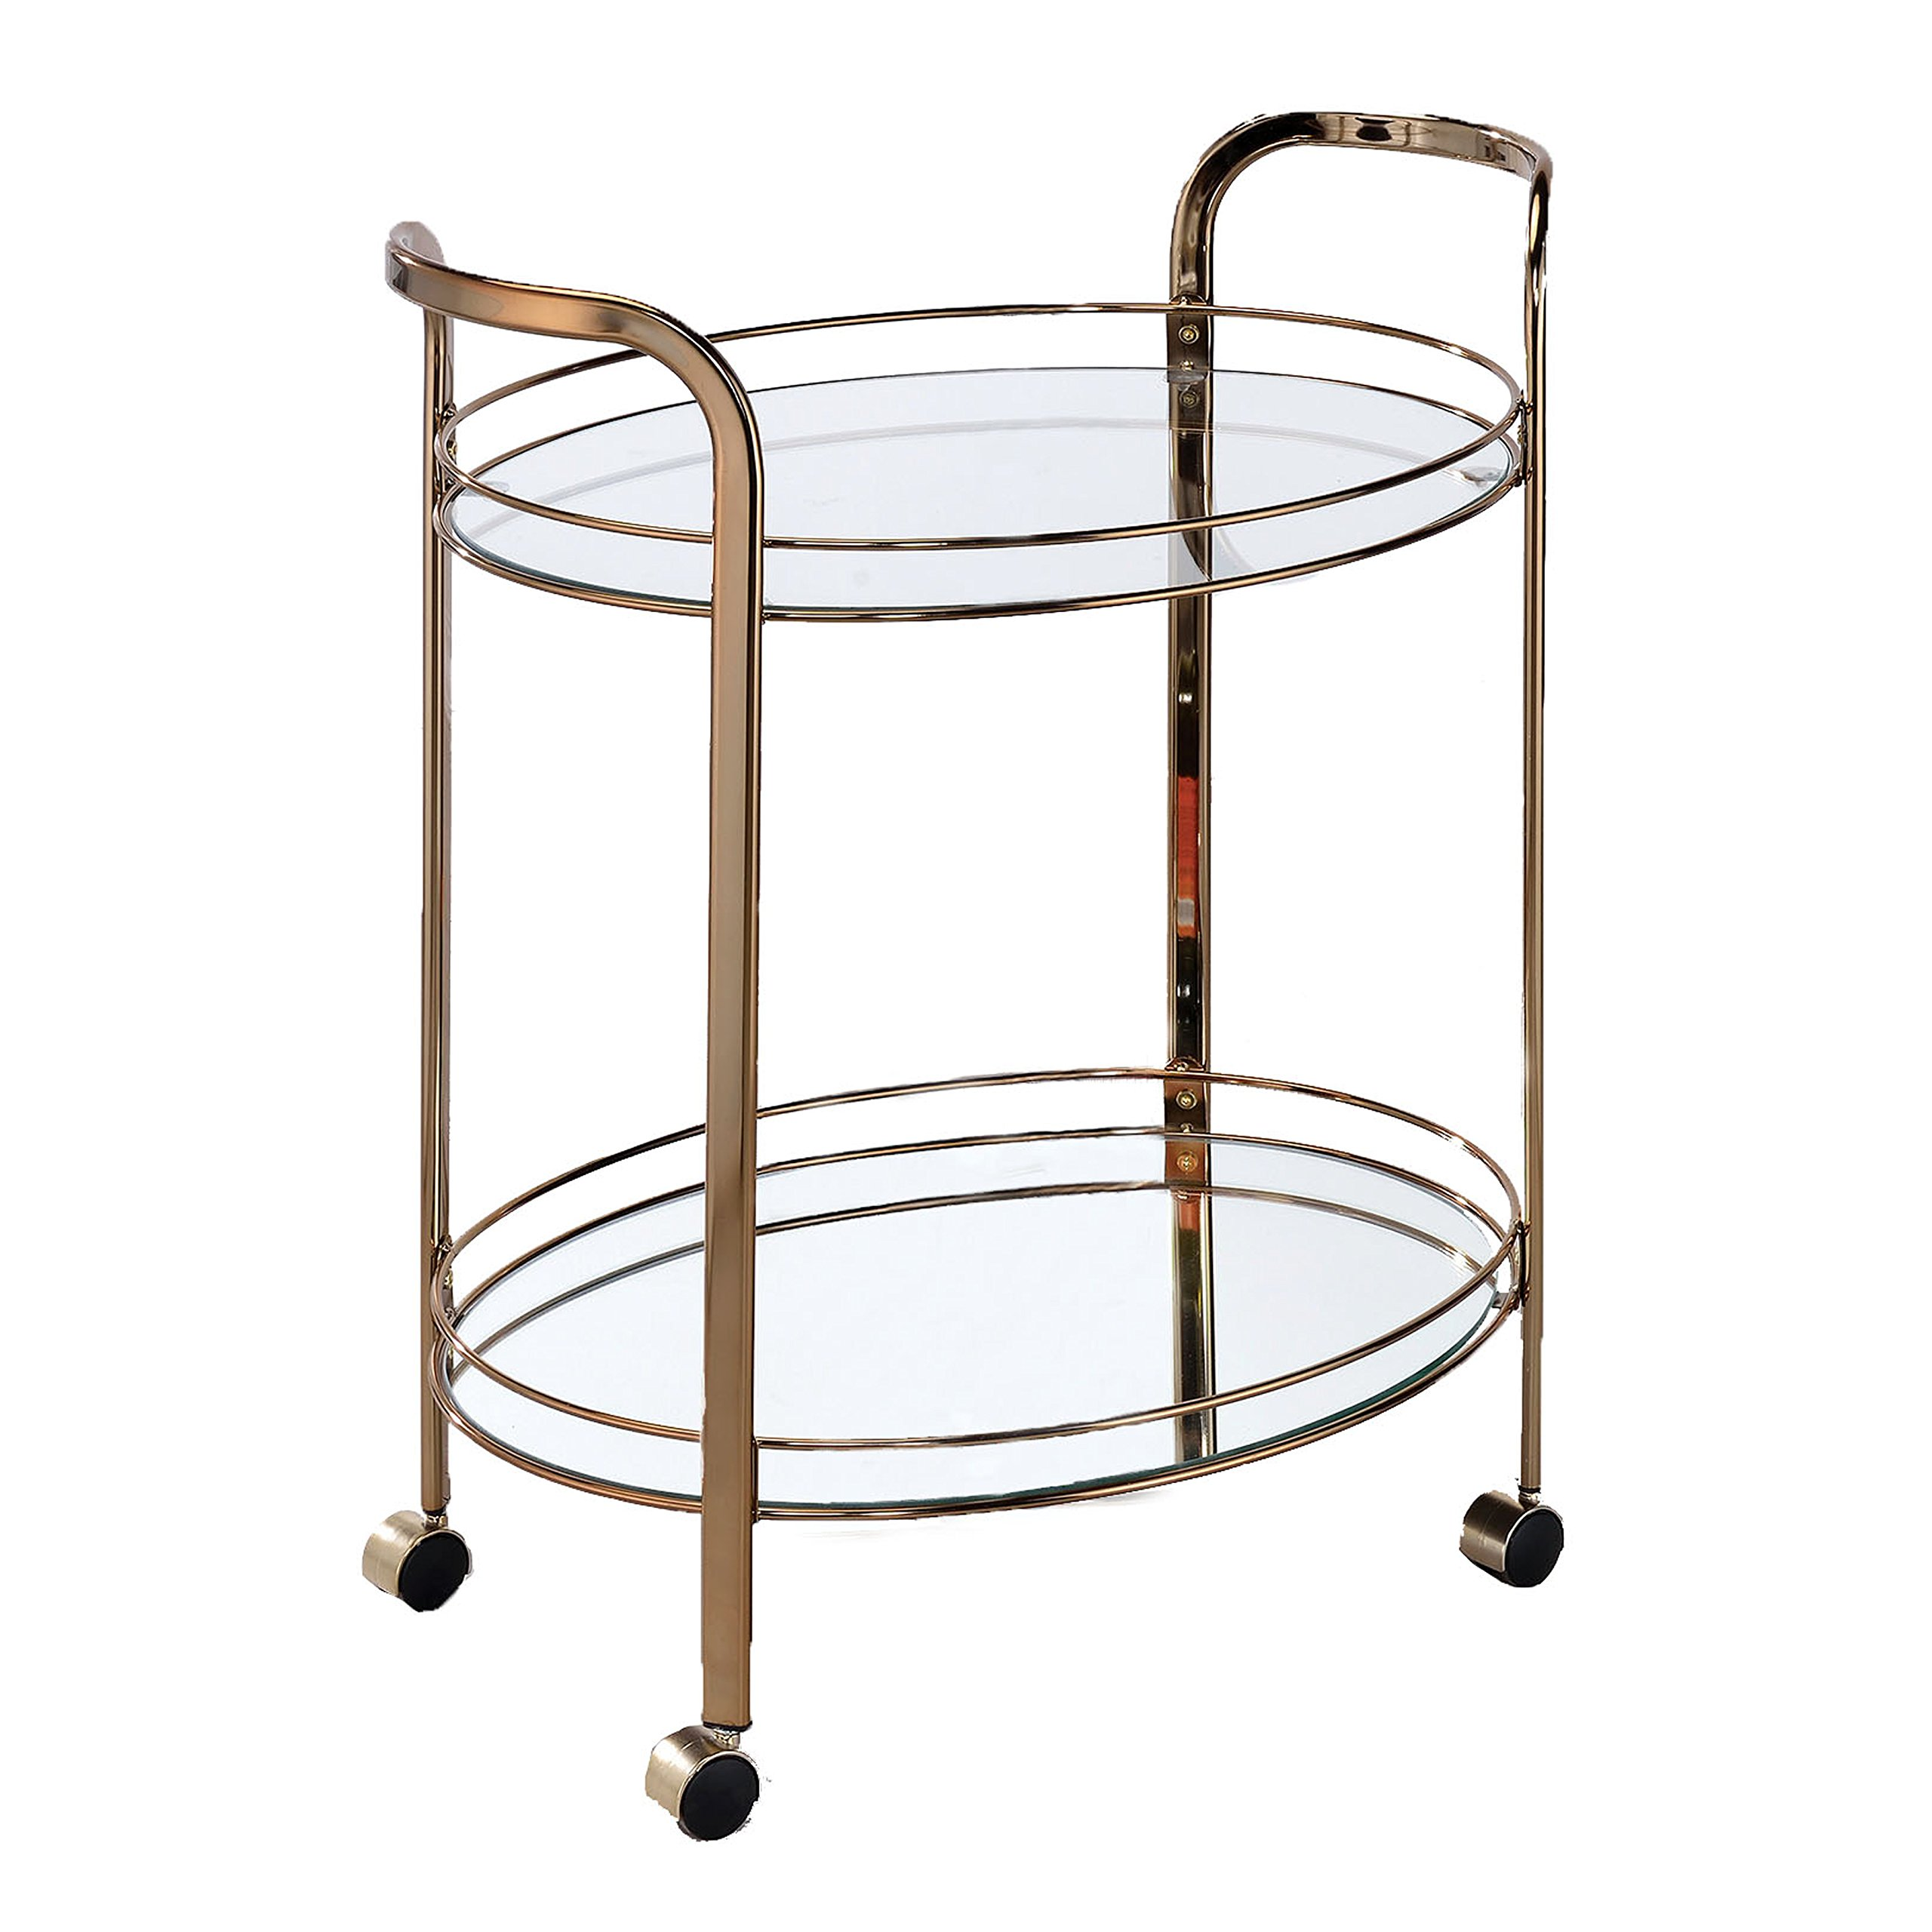 HOMES: Inside + Out IDF-AC236 Mulga Serving Cart Champagne Contemporary